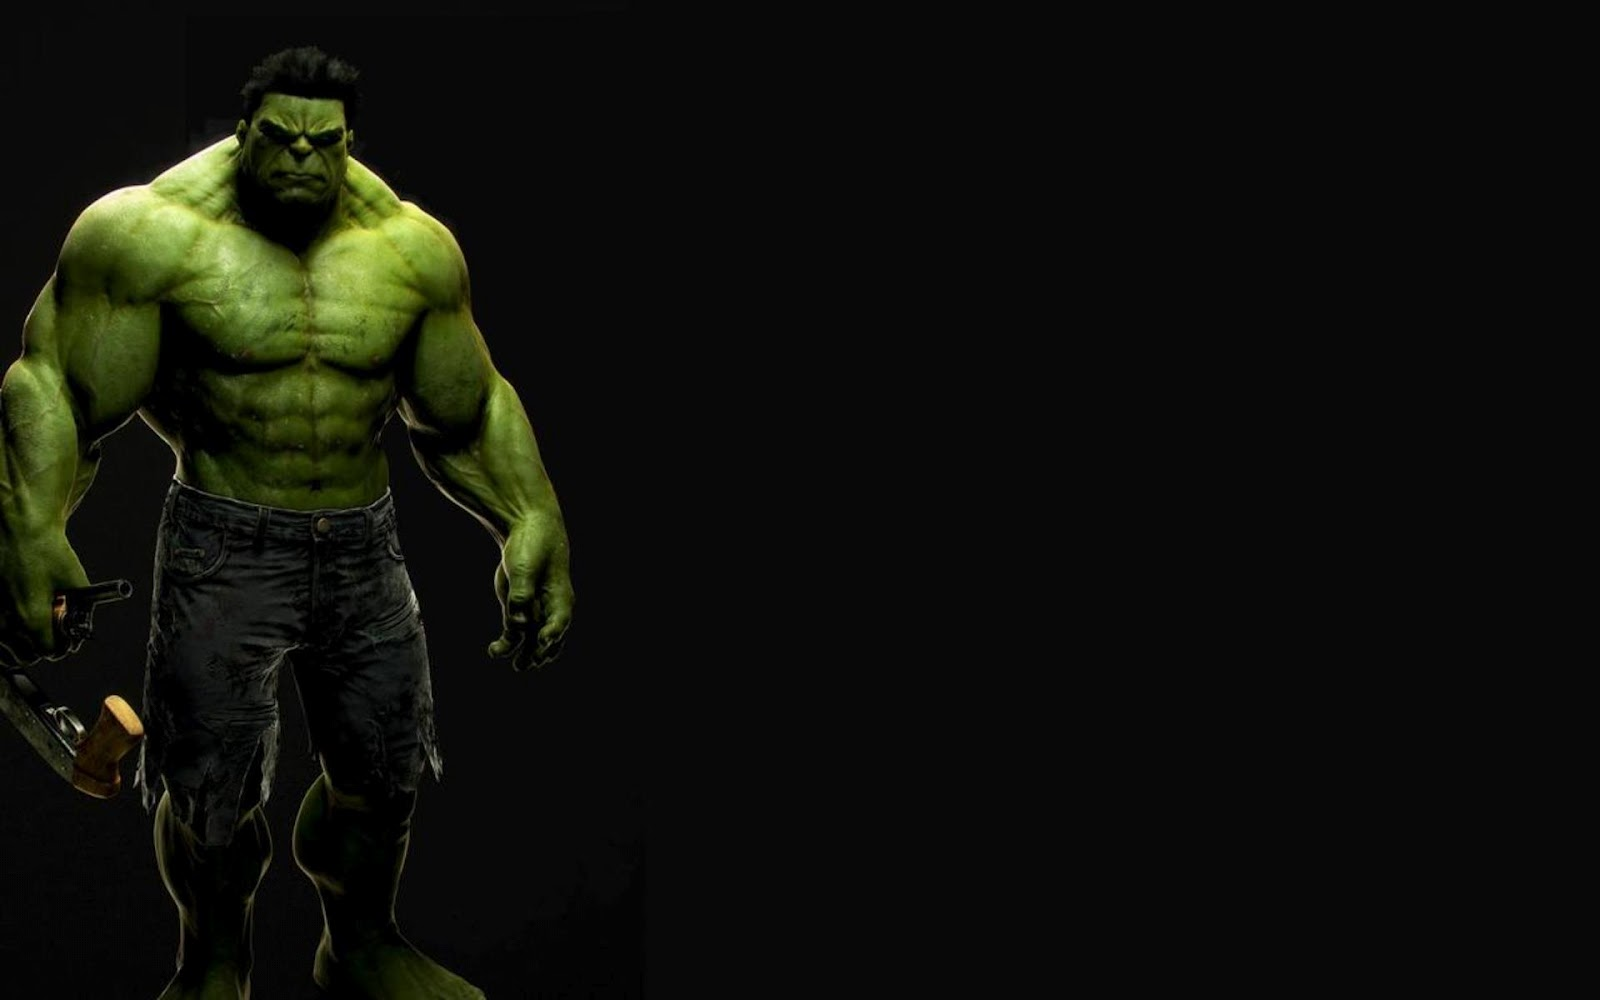 http://2.bp.blogspot.com/-iKir4JBsZBY/T78bHlDfl7I/AAAAAAAADzo/ZGnp4P1UVyg/s1600/The%20Incredible%20Hulk%20Wallpaper%203.jpg